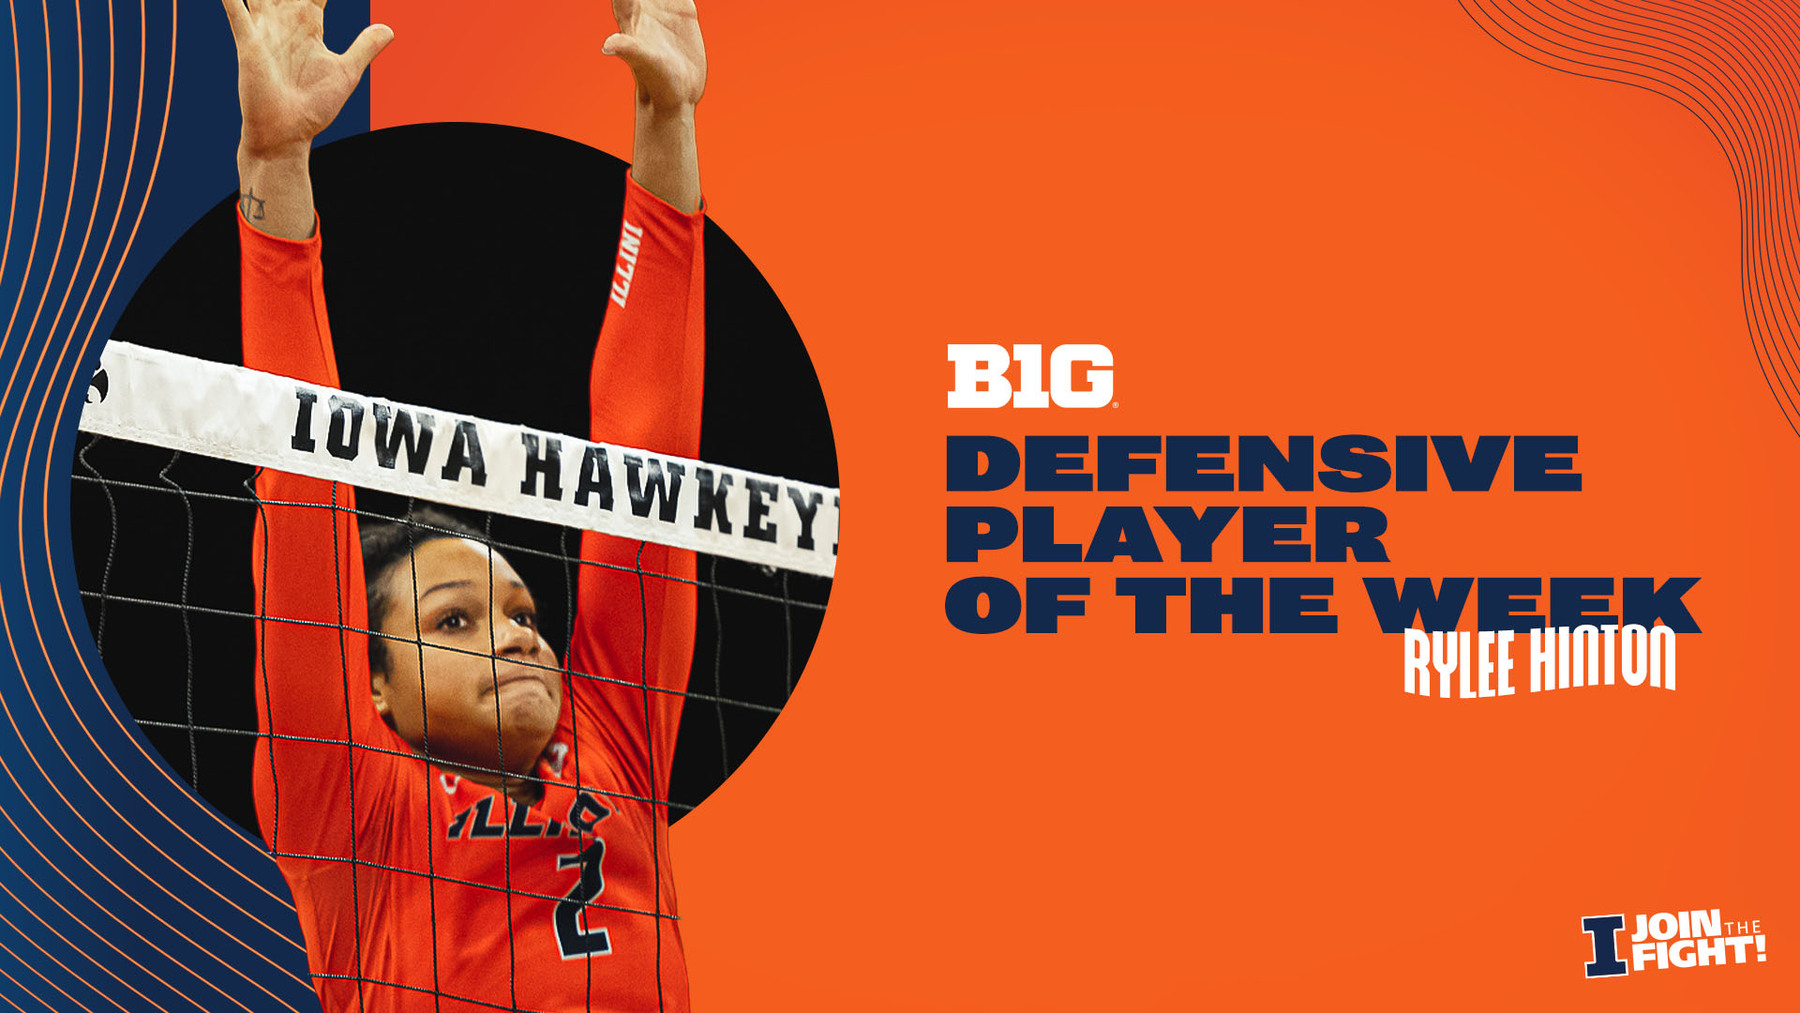 image of Rylee Hinton defending at the net used in graphic announcing her Player of the Week honor